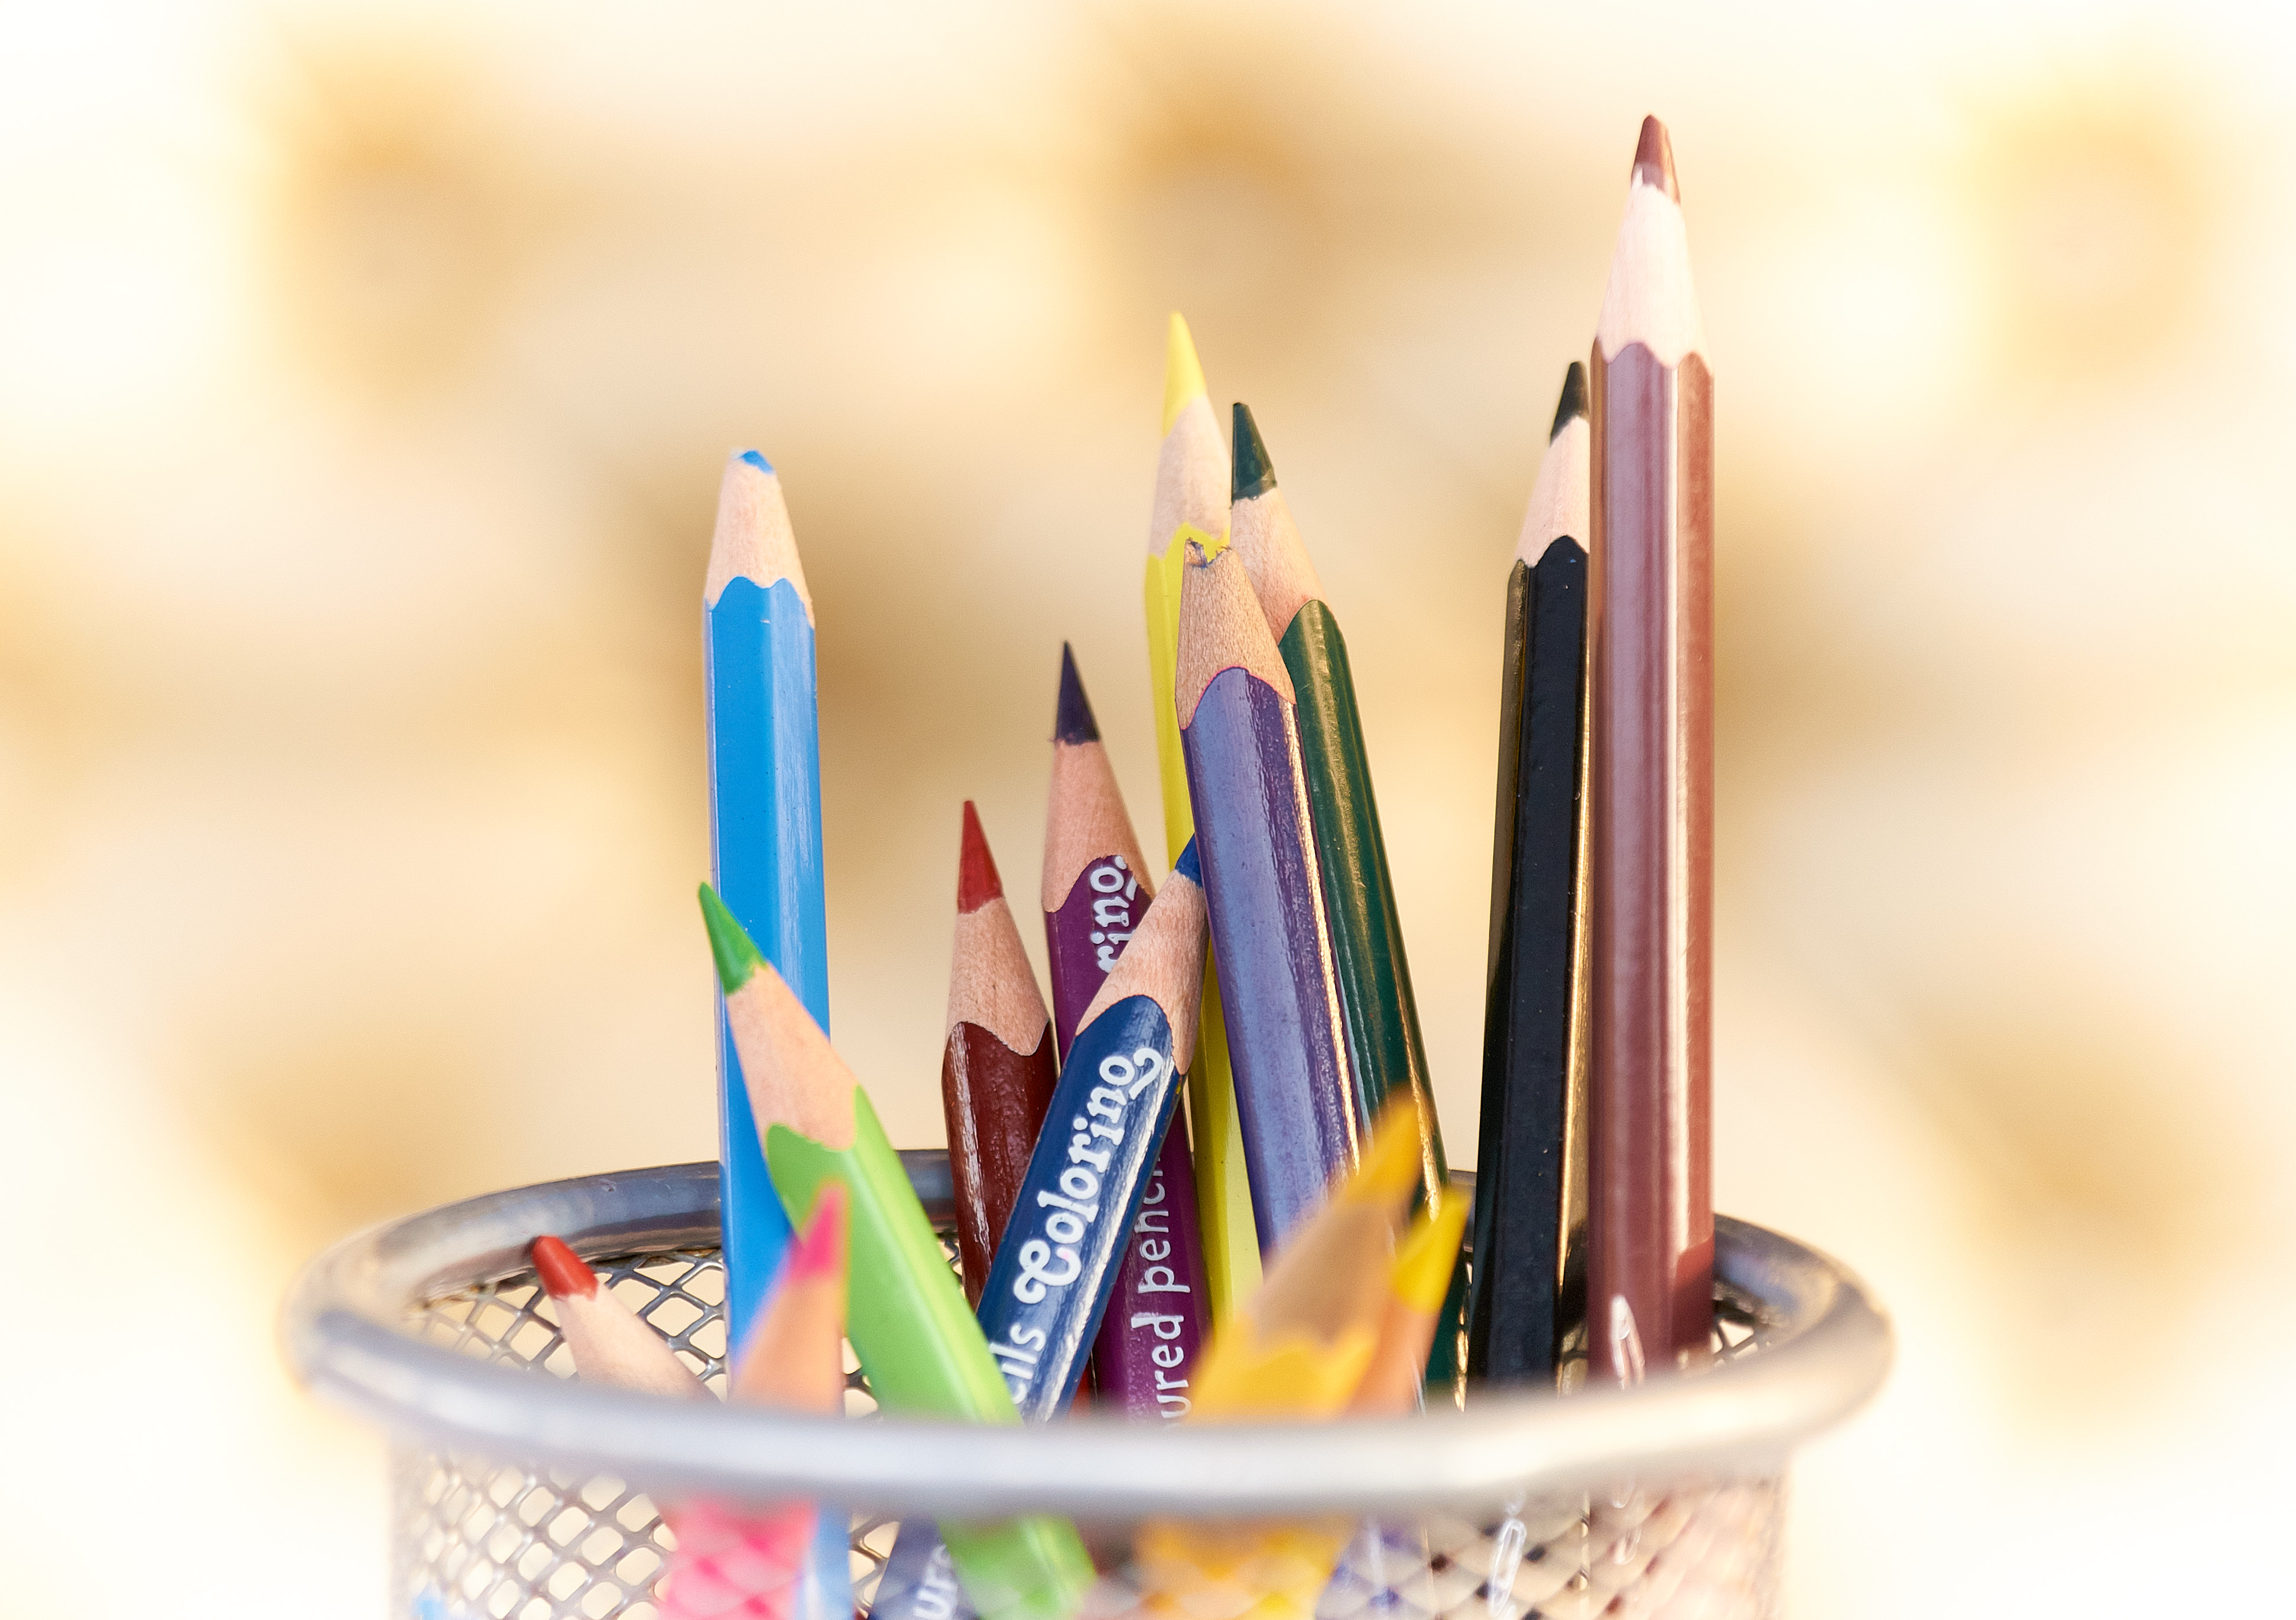 School Supply Industry Face Supply Chain Disruption Amid Start of the School Year